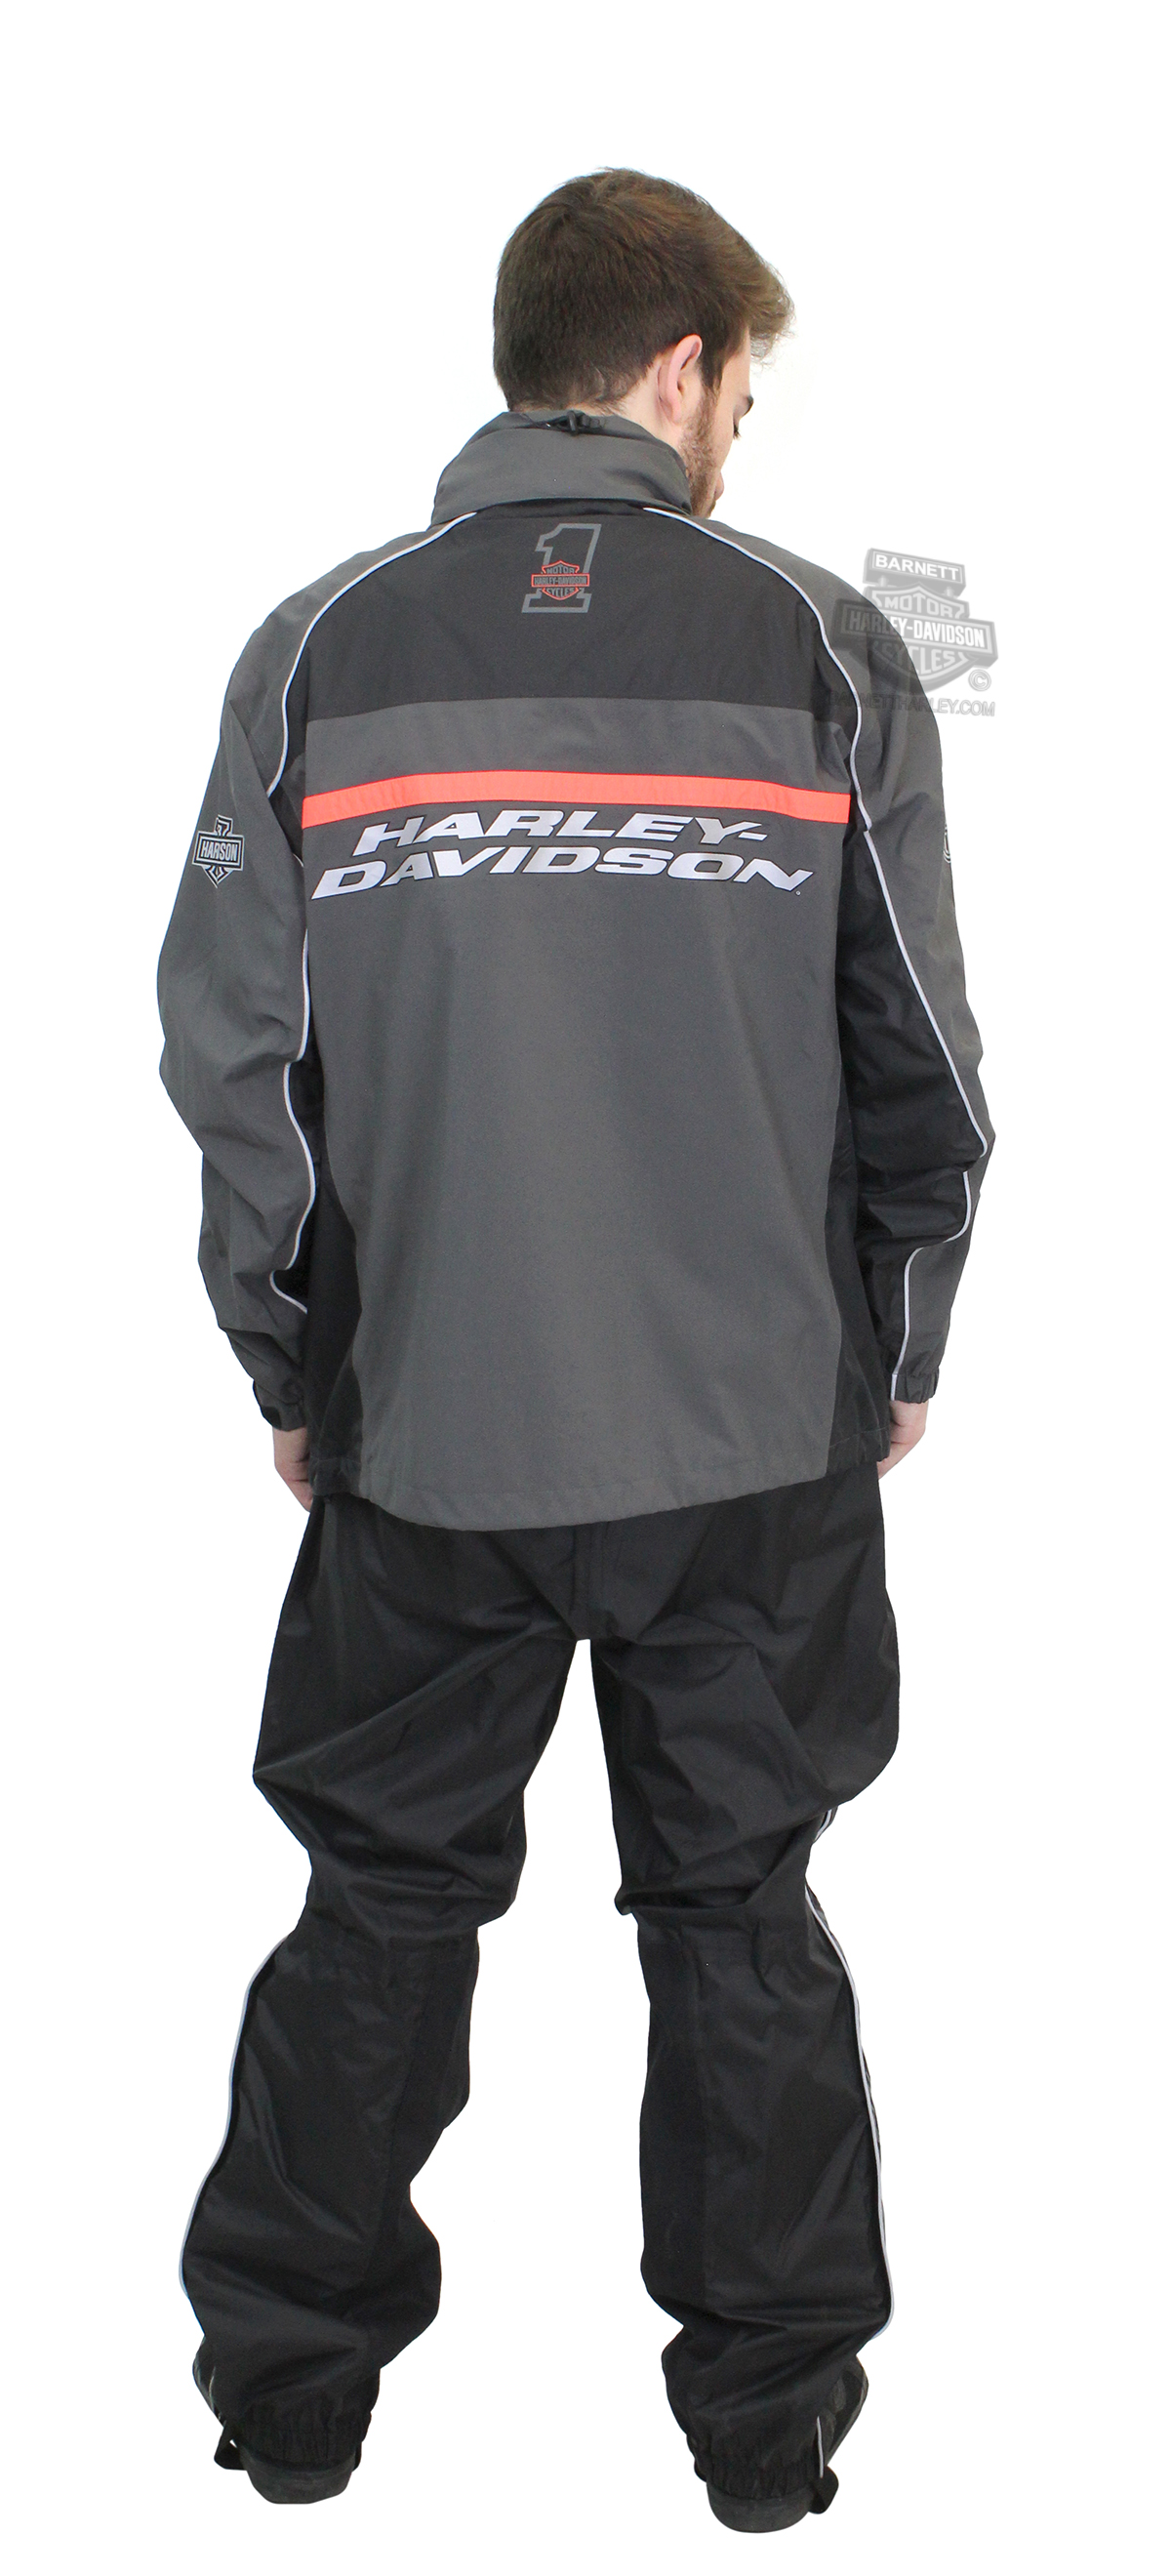 Harley-Davidson® Mens Brother's Ride B&S #1 Logo Reflective Waterproof Charcoal Rain Suit